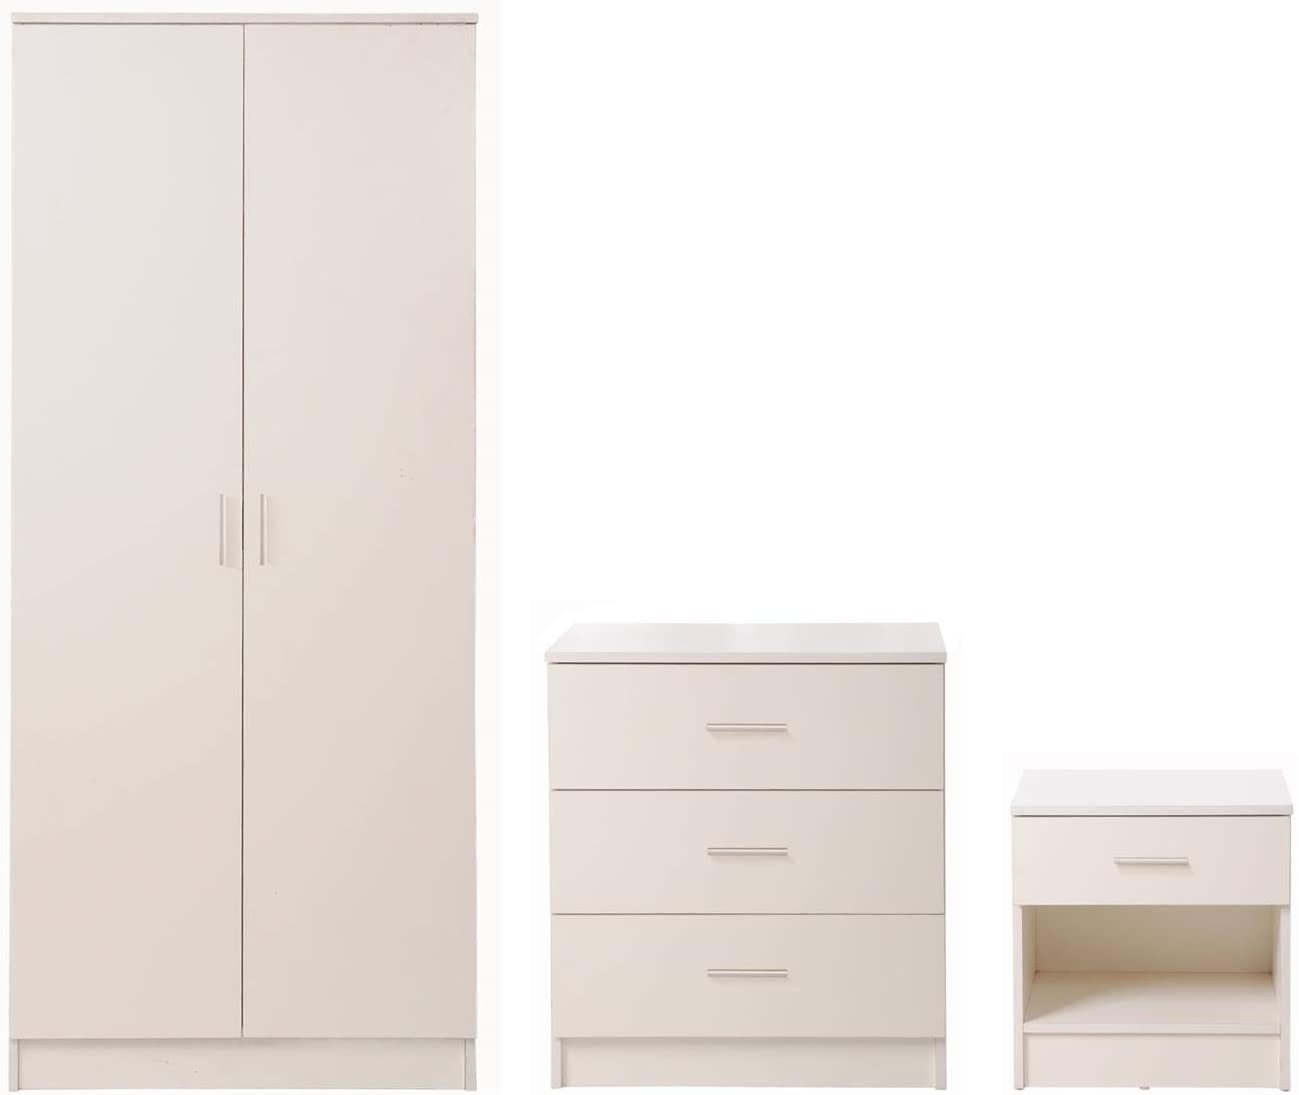 Timber Art Design 3 Piece Bedroom Furniture Set Wardrobe Chest Drawers Bedside Table White Amazon Co Uk Kitchen Home